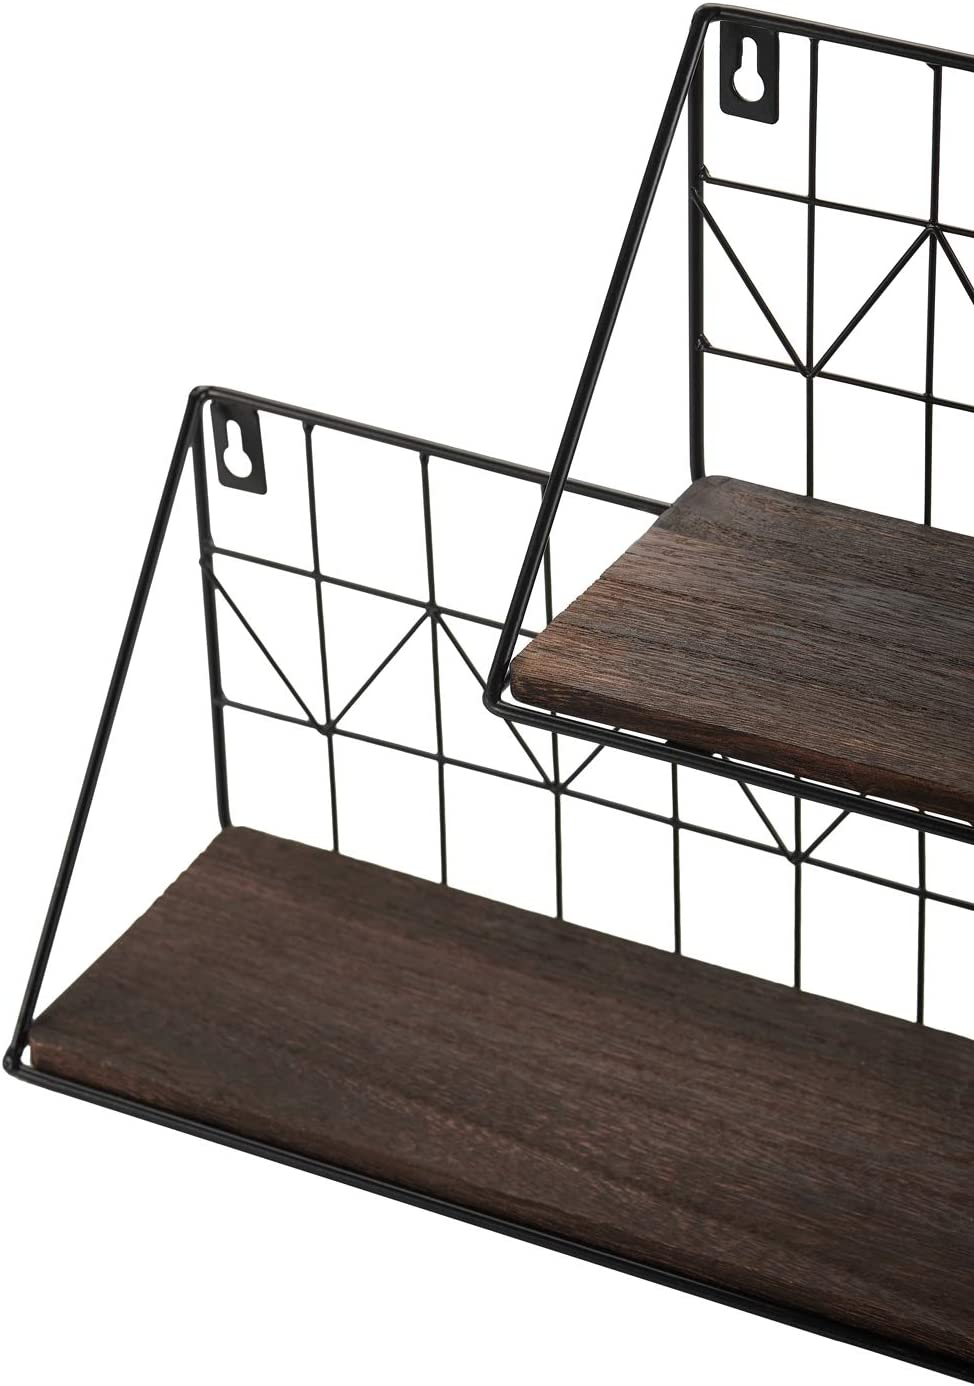 17 Inch Mkono Floating Shelves Wall Mounted Set of 2 Modern Wood Wall Storage Shelves with Metal Wire Display Shelf for Bedroom Living Room Bathroom Kitchen Office